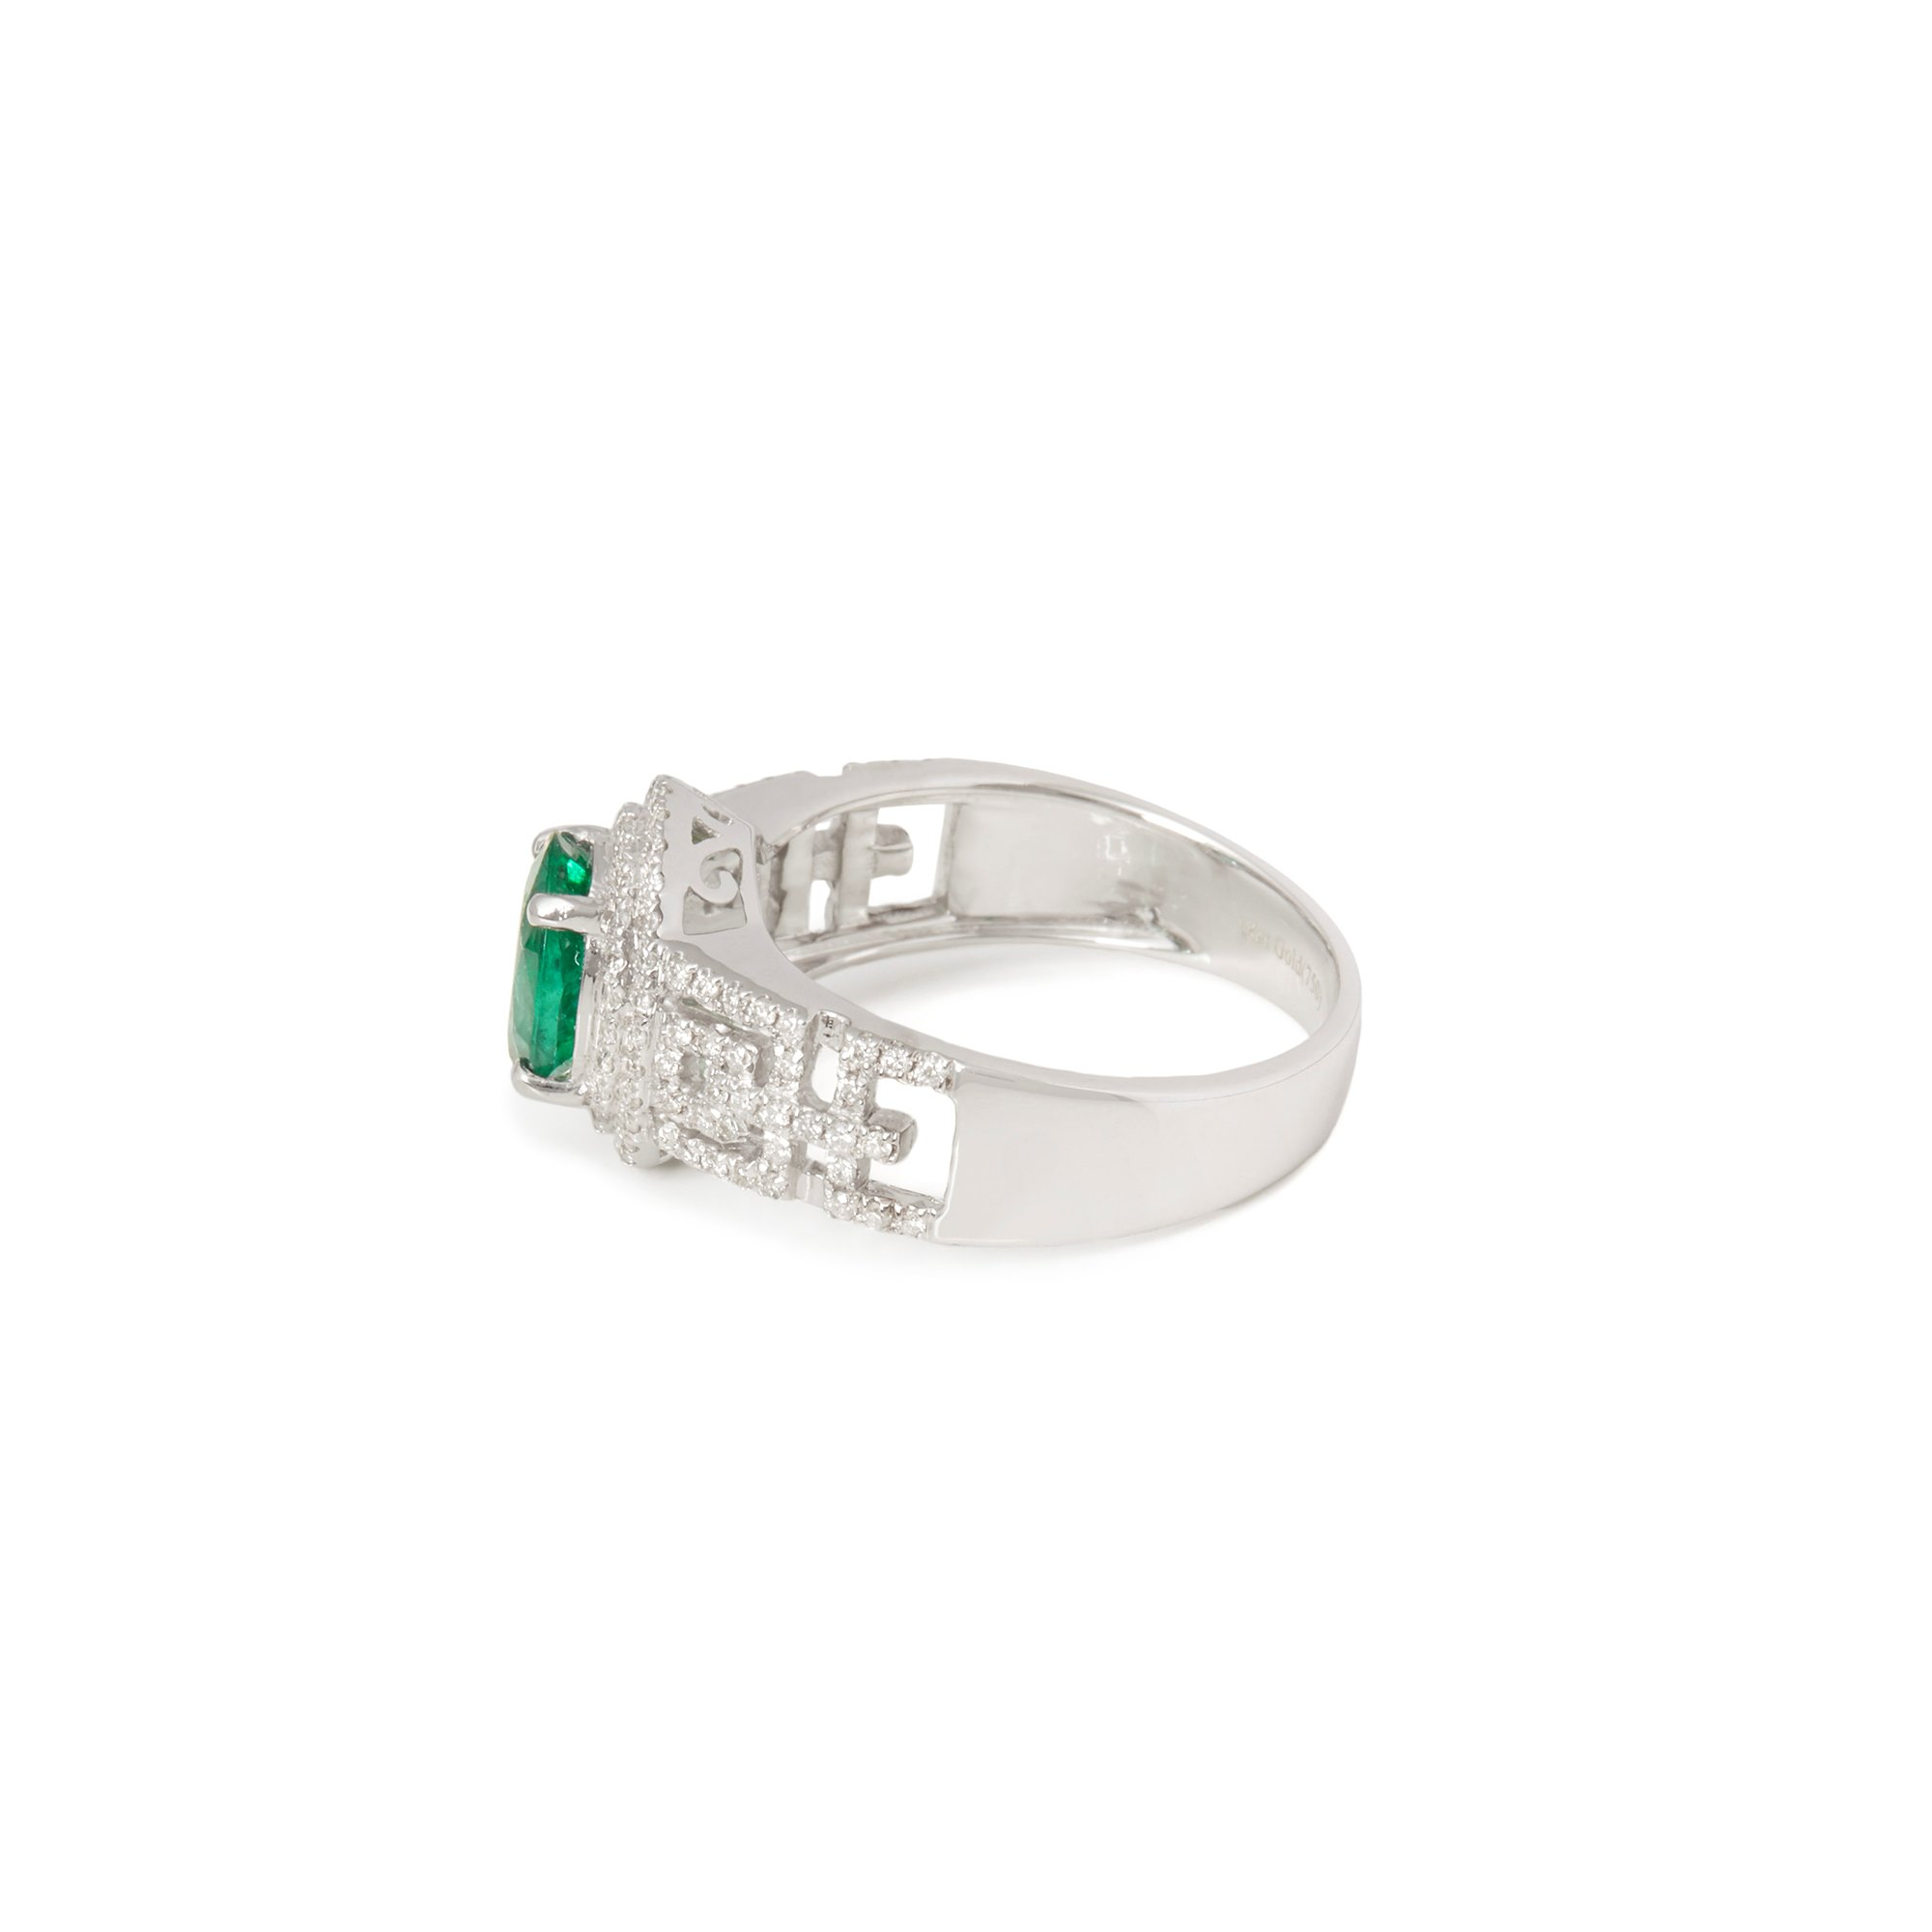 David Jerome Certified 1.23ct Untreated Zambian Oval Cut Emerald and Diamond 18ct gold Ring